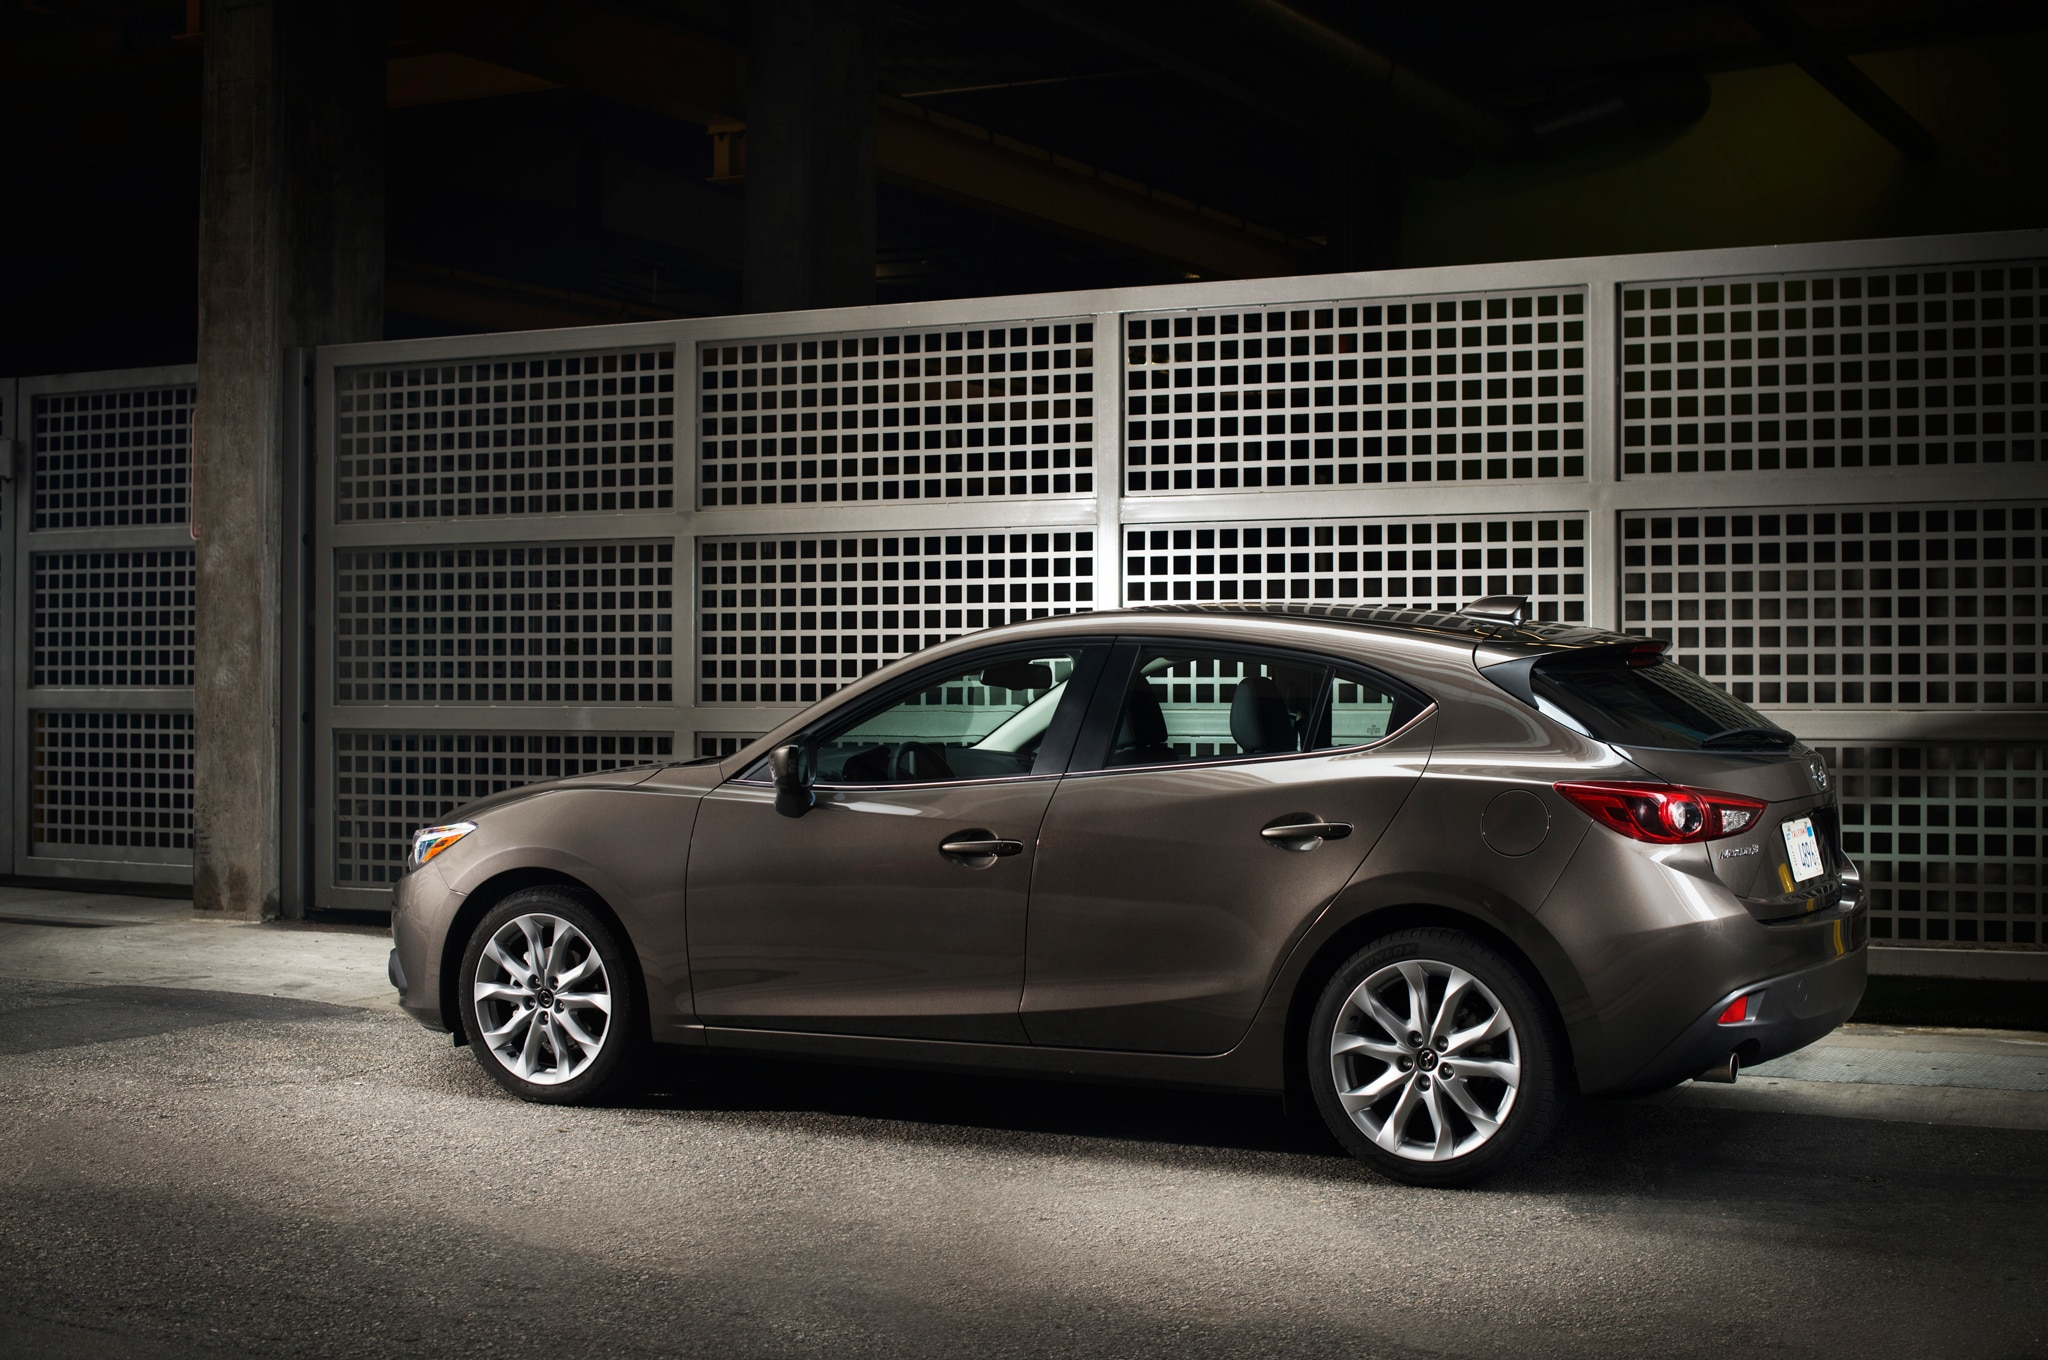 Report: Next Mazdaspeed 3 Coming in 2016 with 300+ HP, All ... 2014 Mazda 3 Wheel Specs